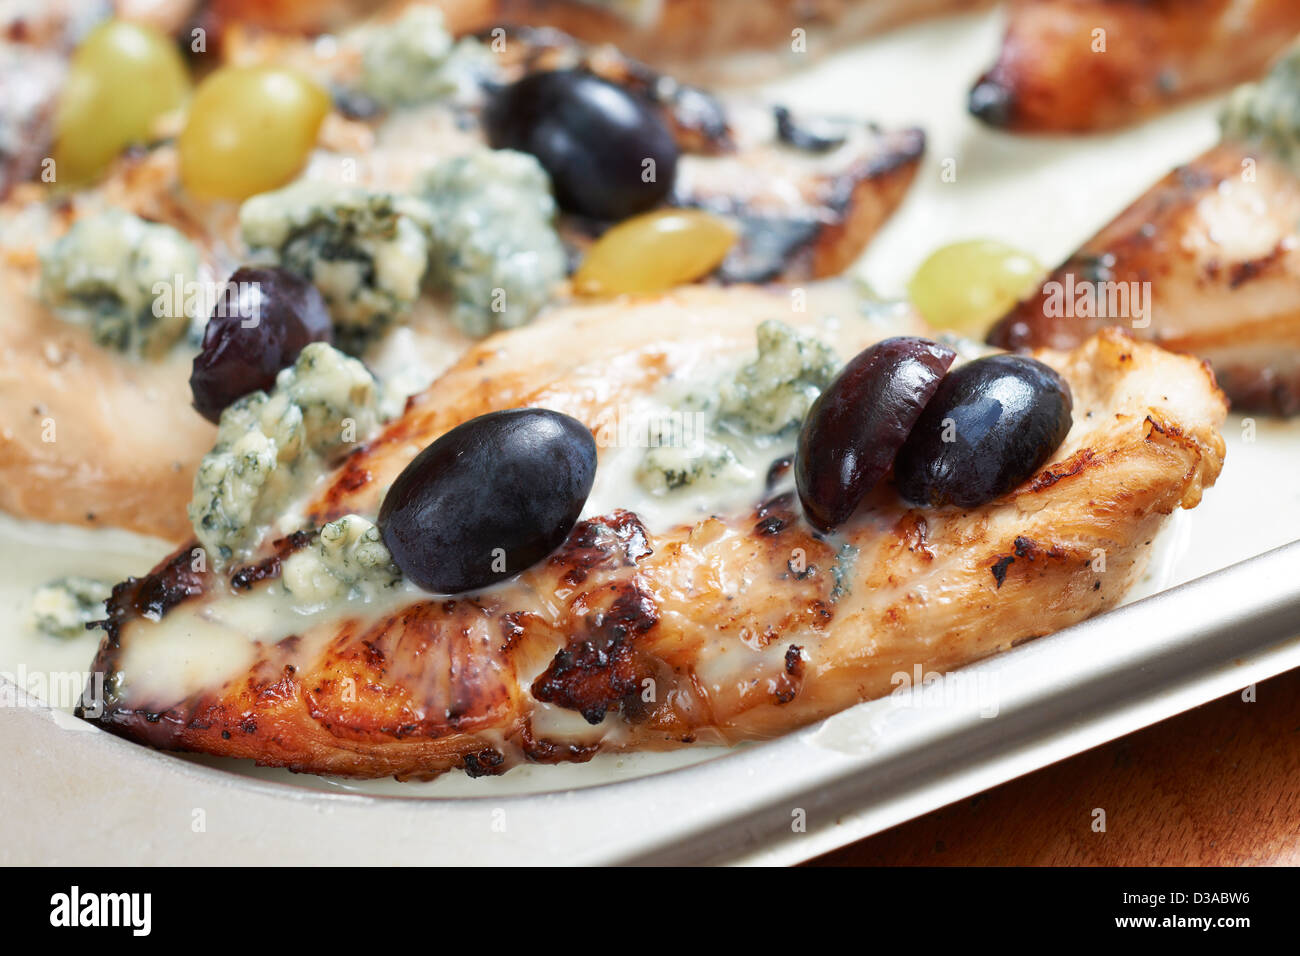 Mediterranean food of Provence, chicken fillet roasted with blue cheese, grapes and olives - Stock Image